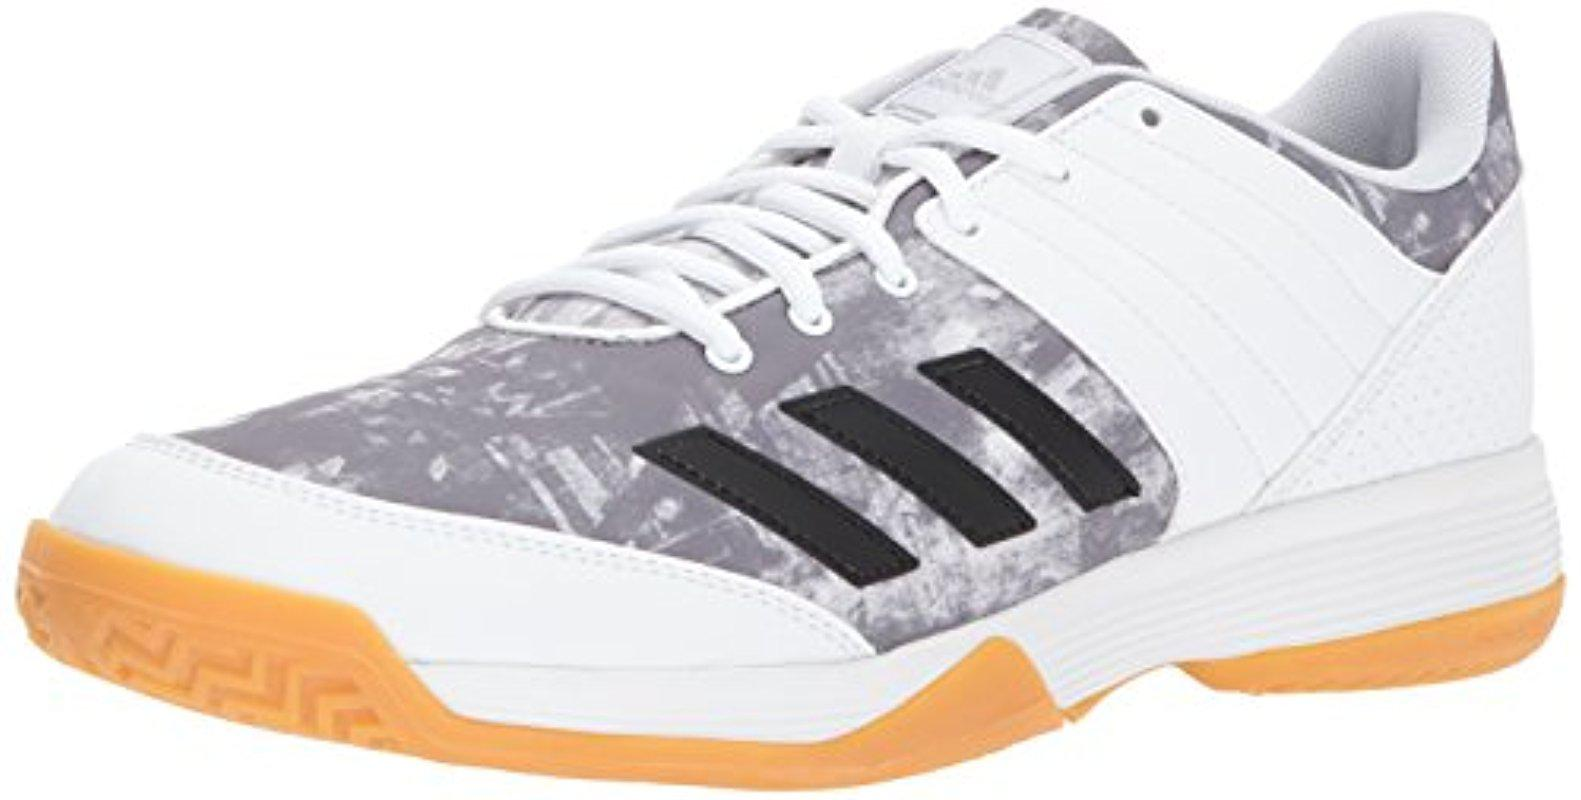 innovative design 23a4a 84ca4 Lyst - adidas Ligra 5 W Tennis Shoe in Metallic